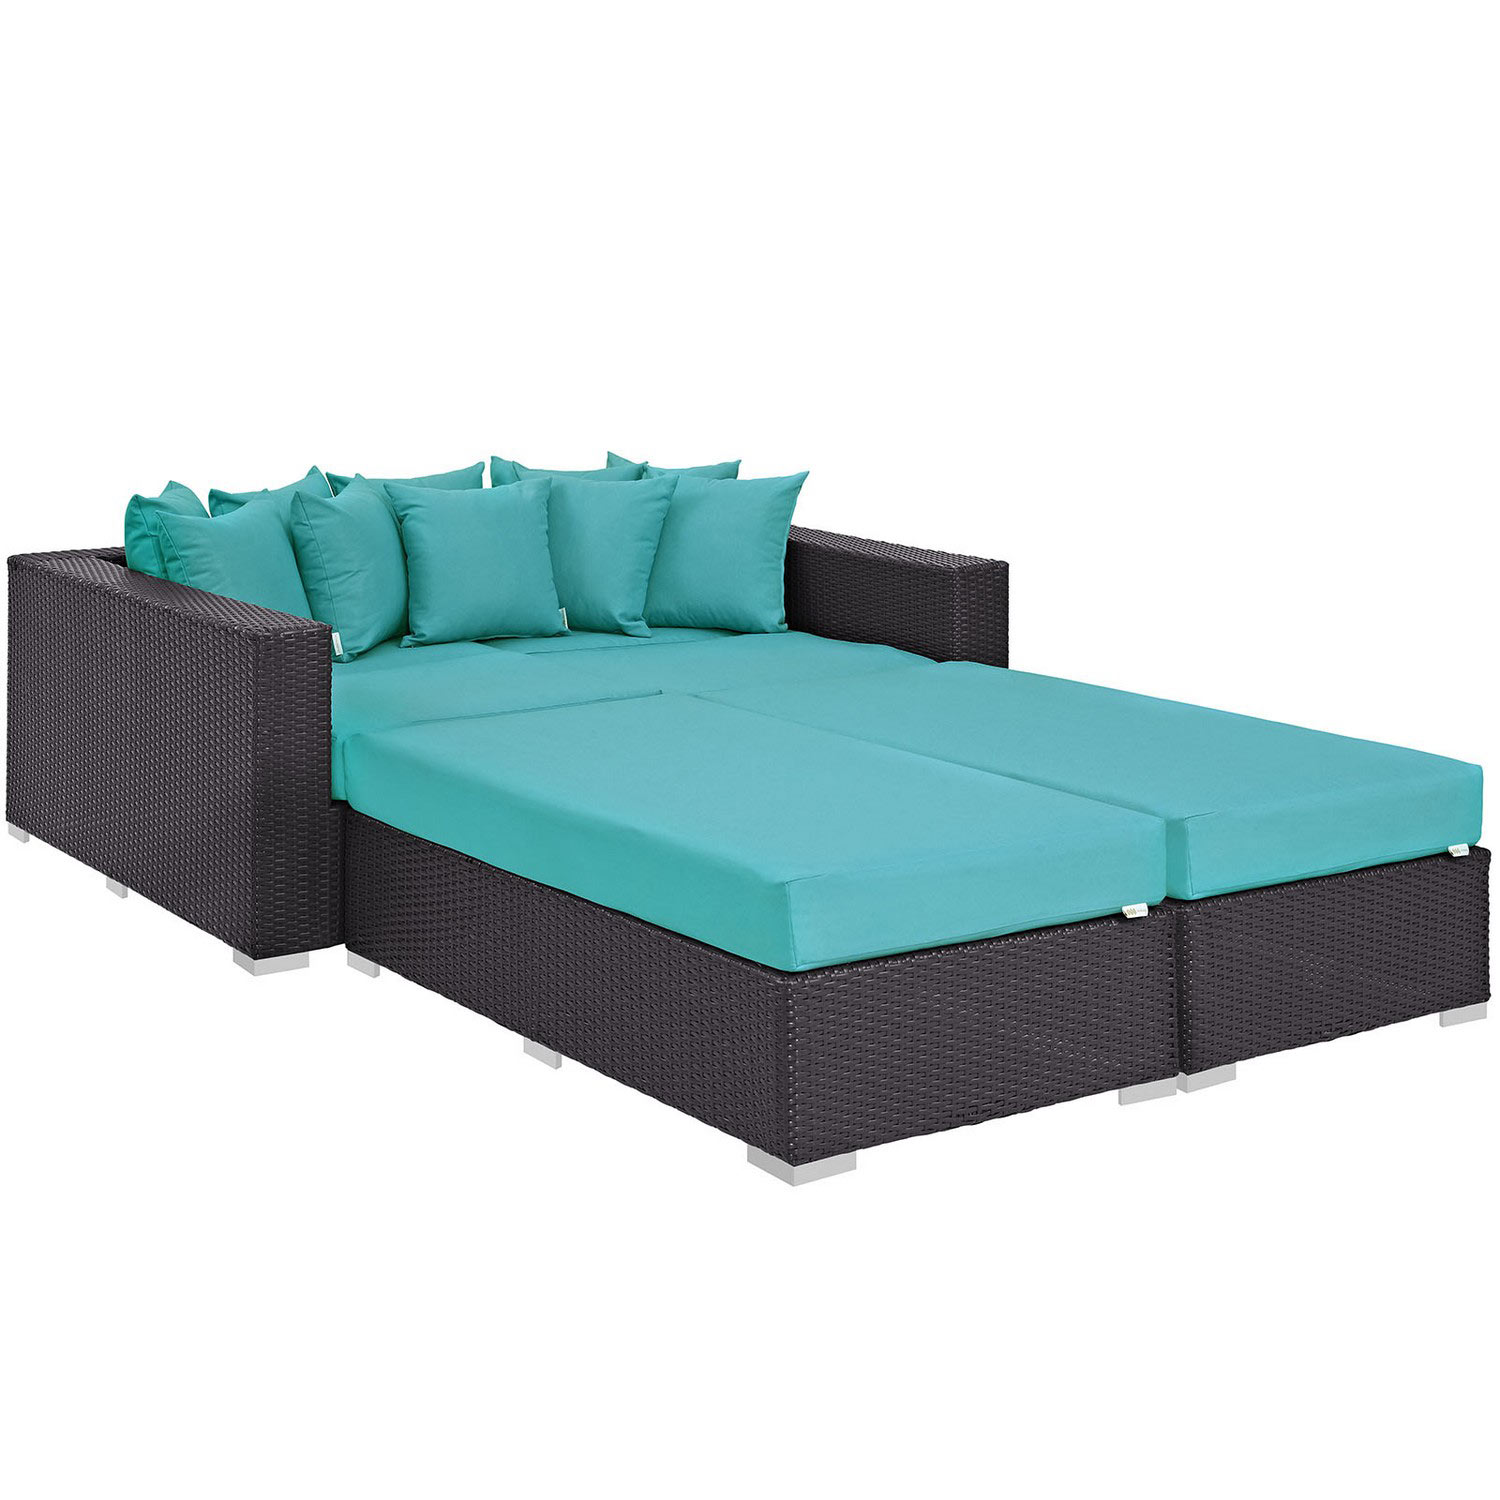 Modway Convene 4 Piece Outdoor Patio Daybed - Espresso Turquoise